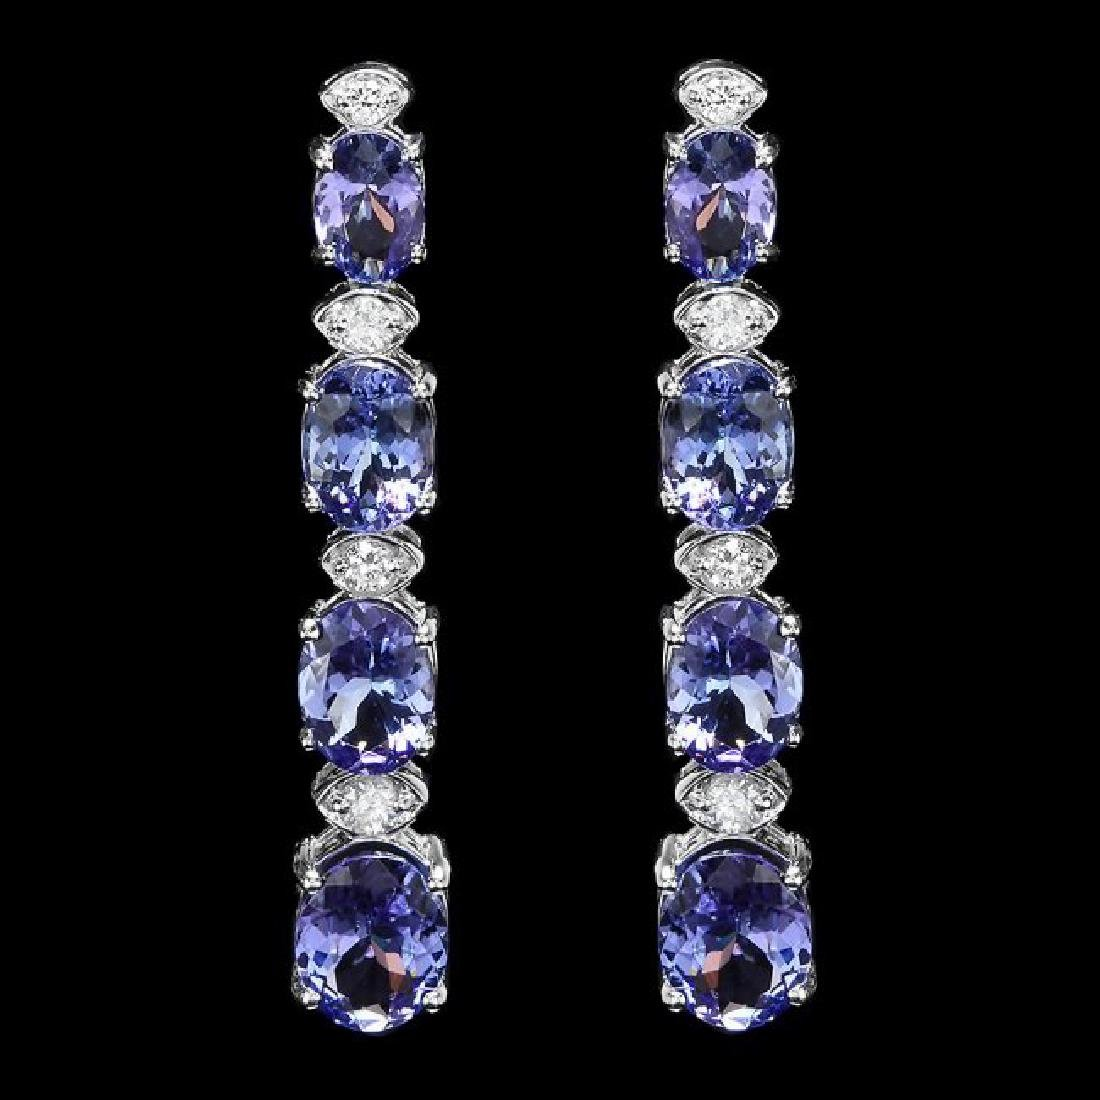 14k Gold 9.50ct Tanzanite 0.50ct Diamond Earrings - 2